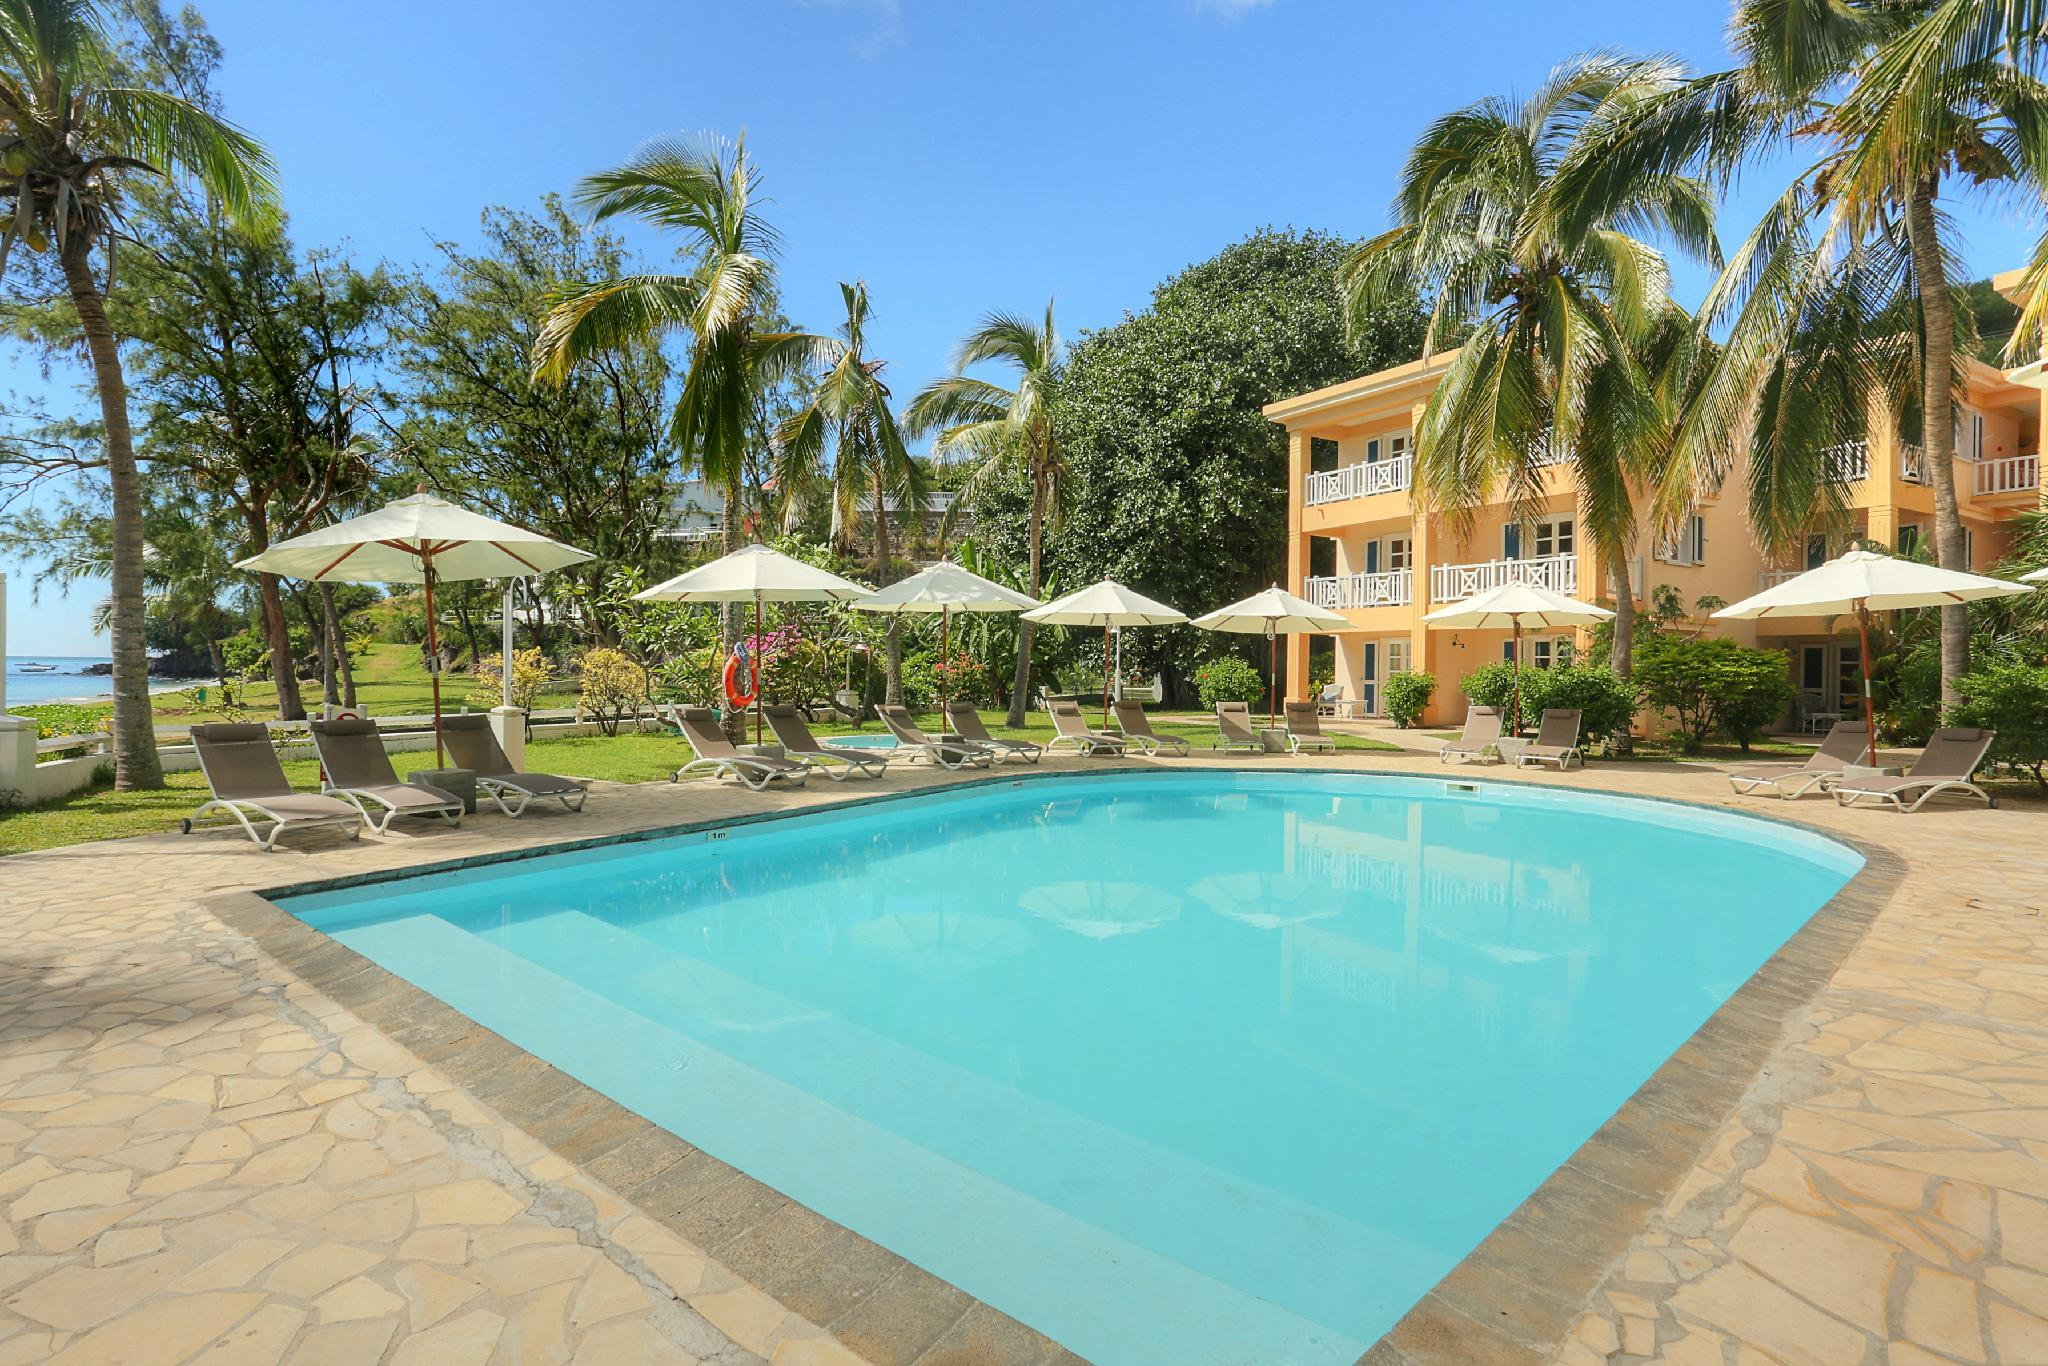 Villa Terre Du Sud cocotiers hotel - rodrigues   rodrigues island 2020 updated